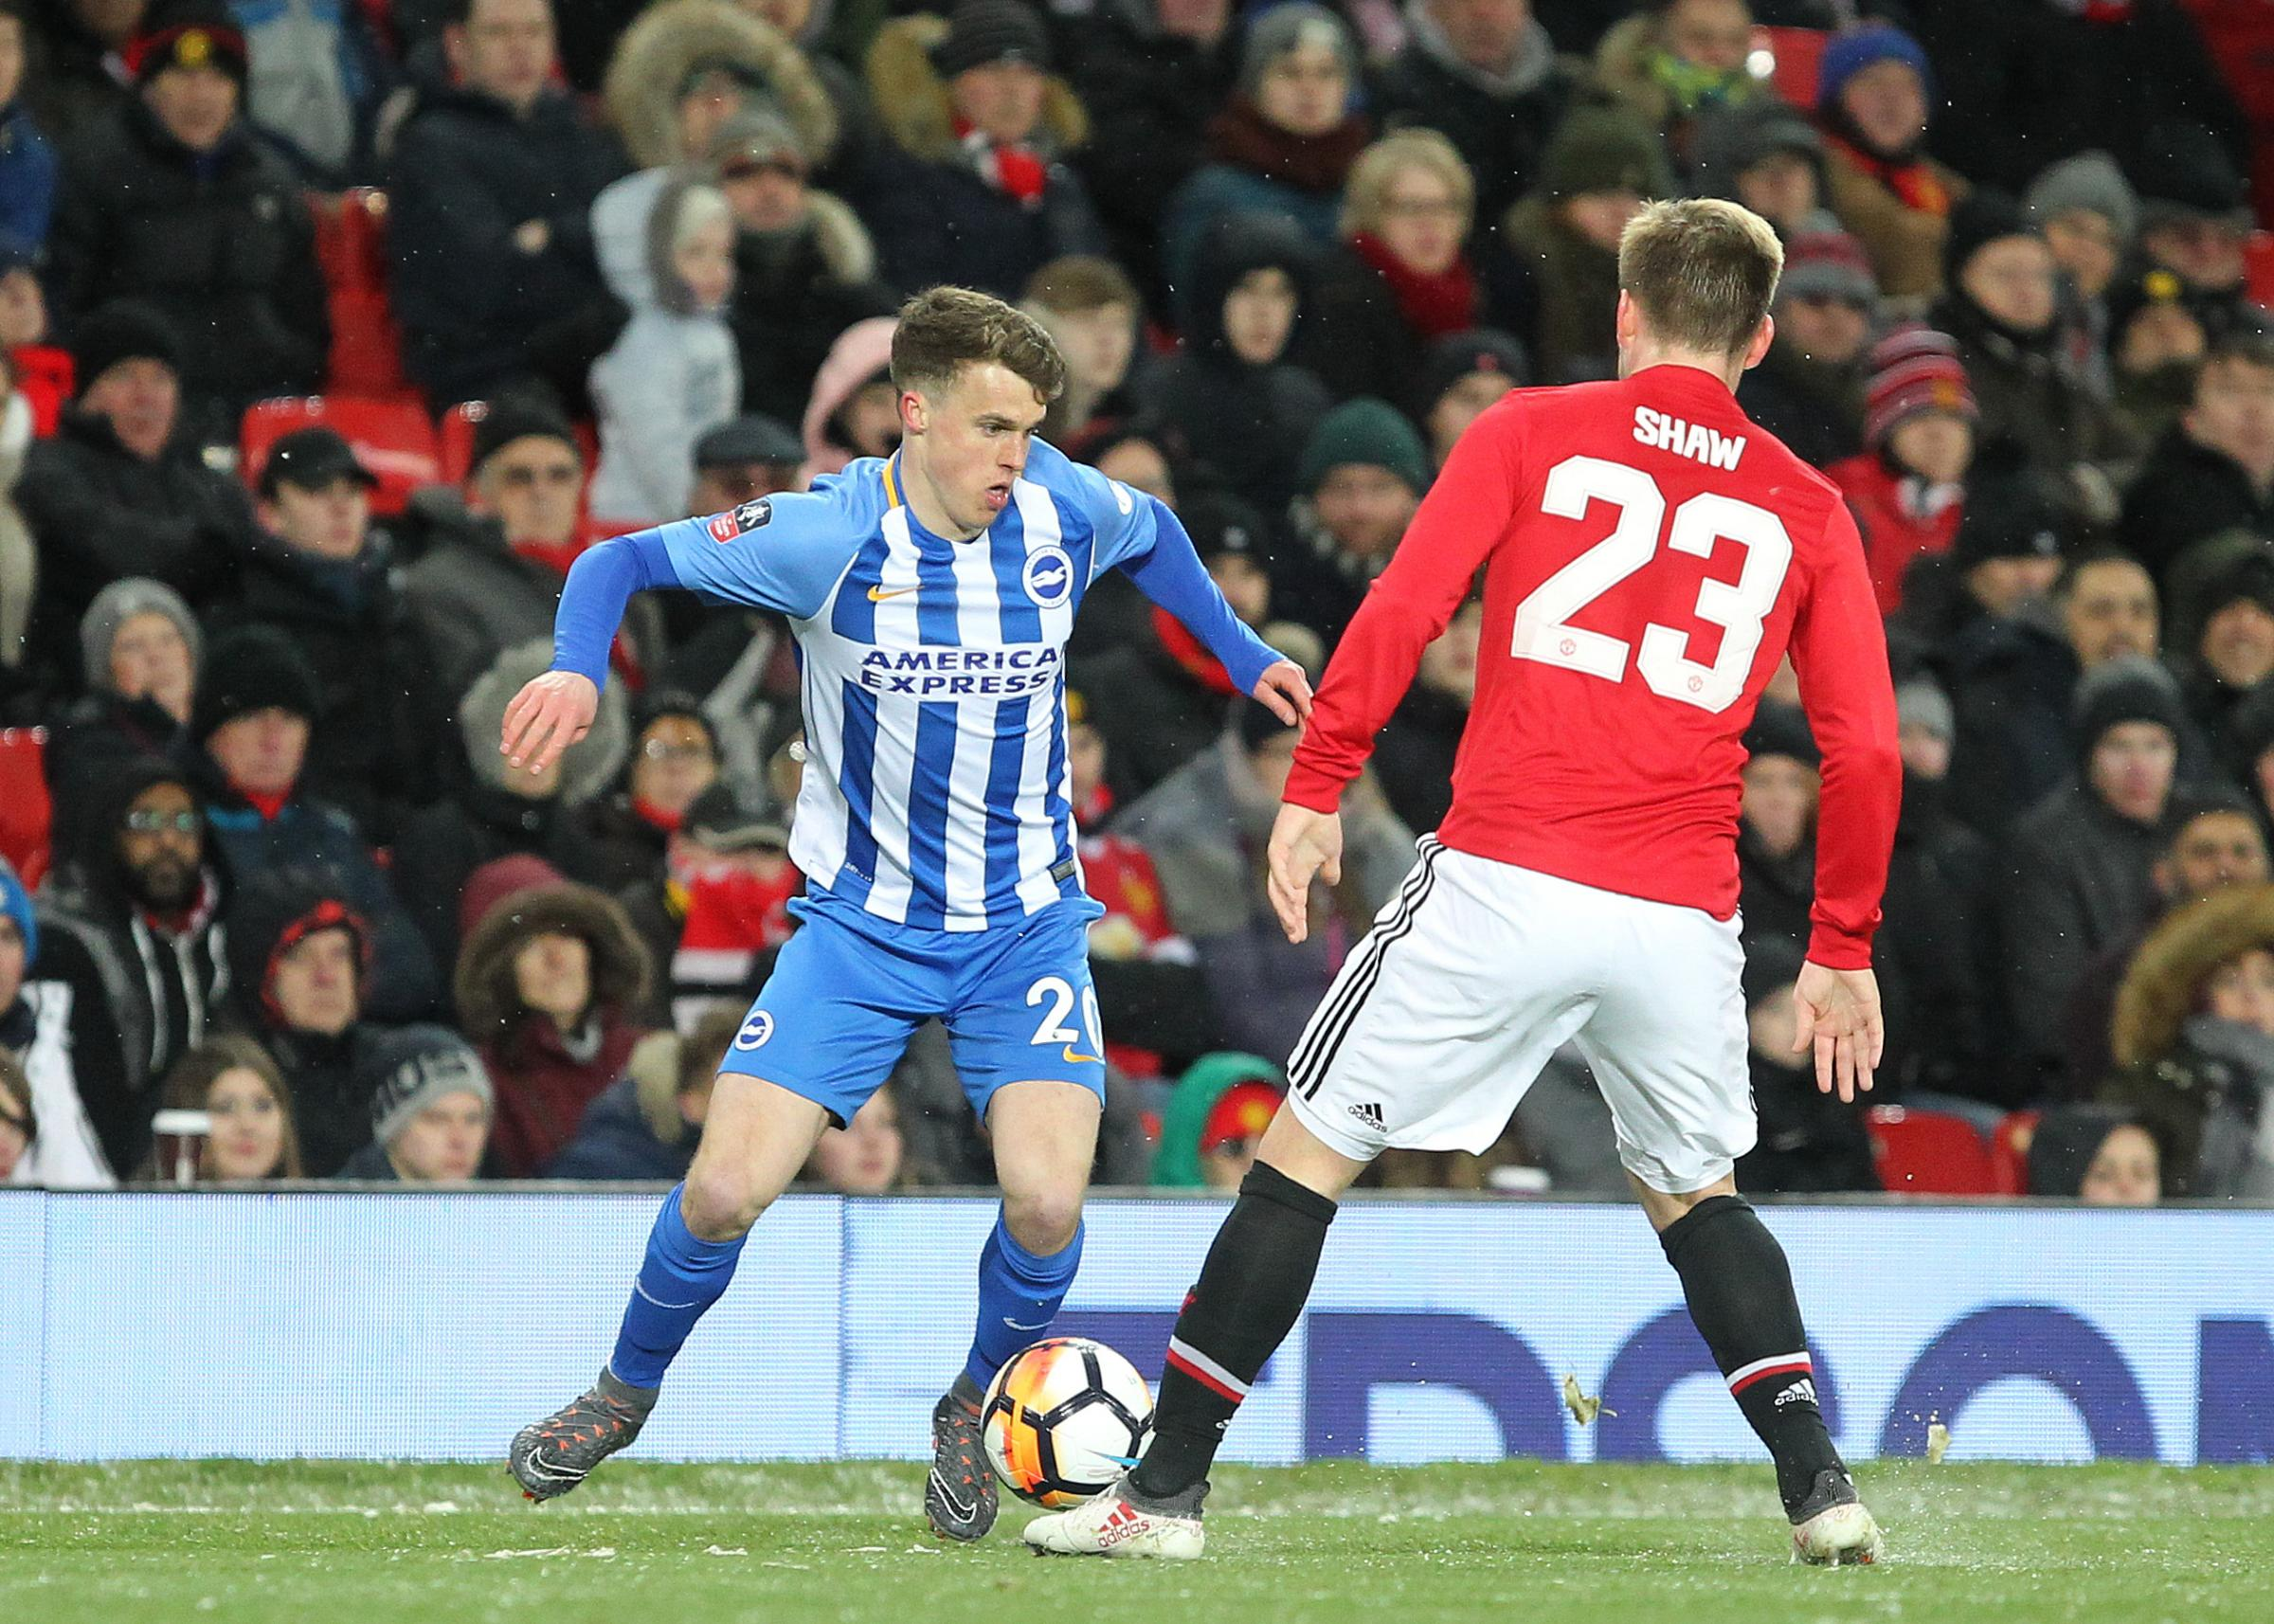 Solly March has not started for Albion in the FA Cup since the quarter-final exit against Manchester United at Old Trafford a year ago